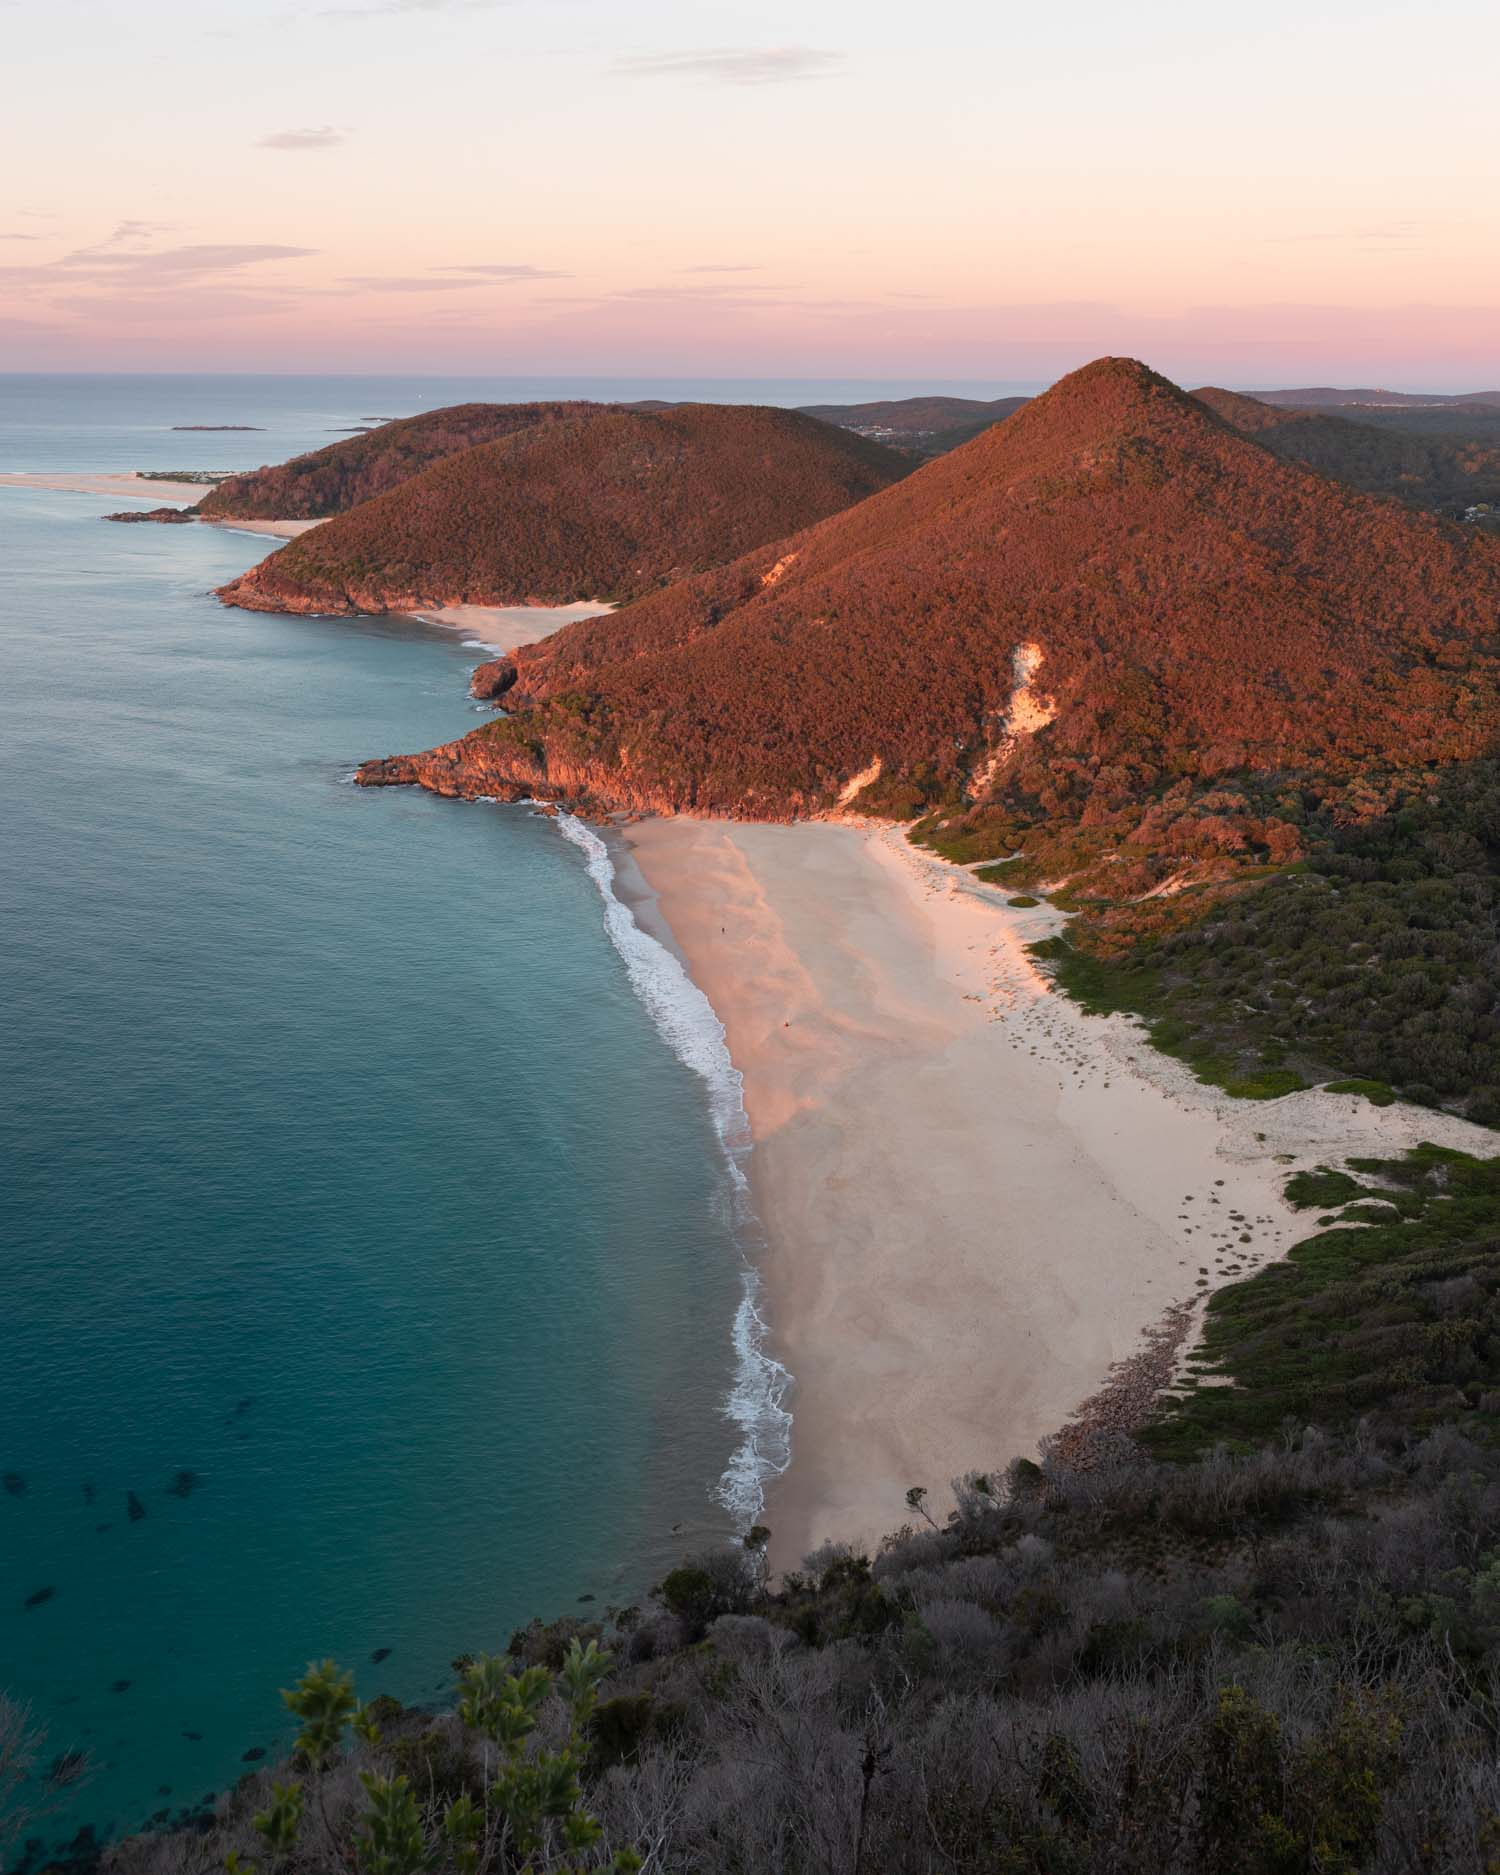 Sunrise from Tomaree Headland